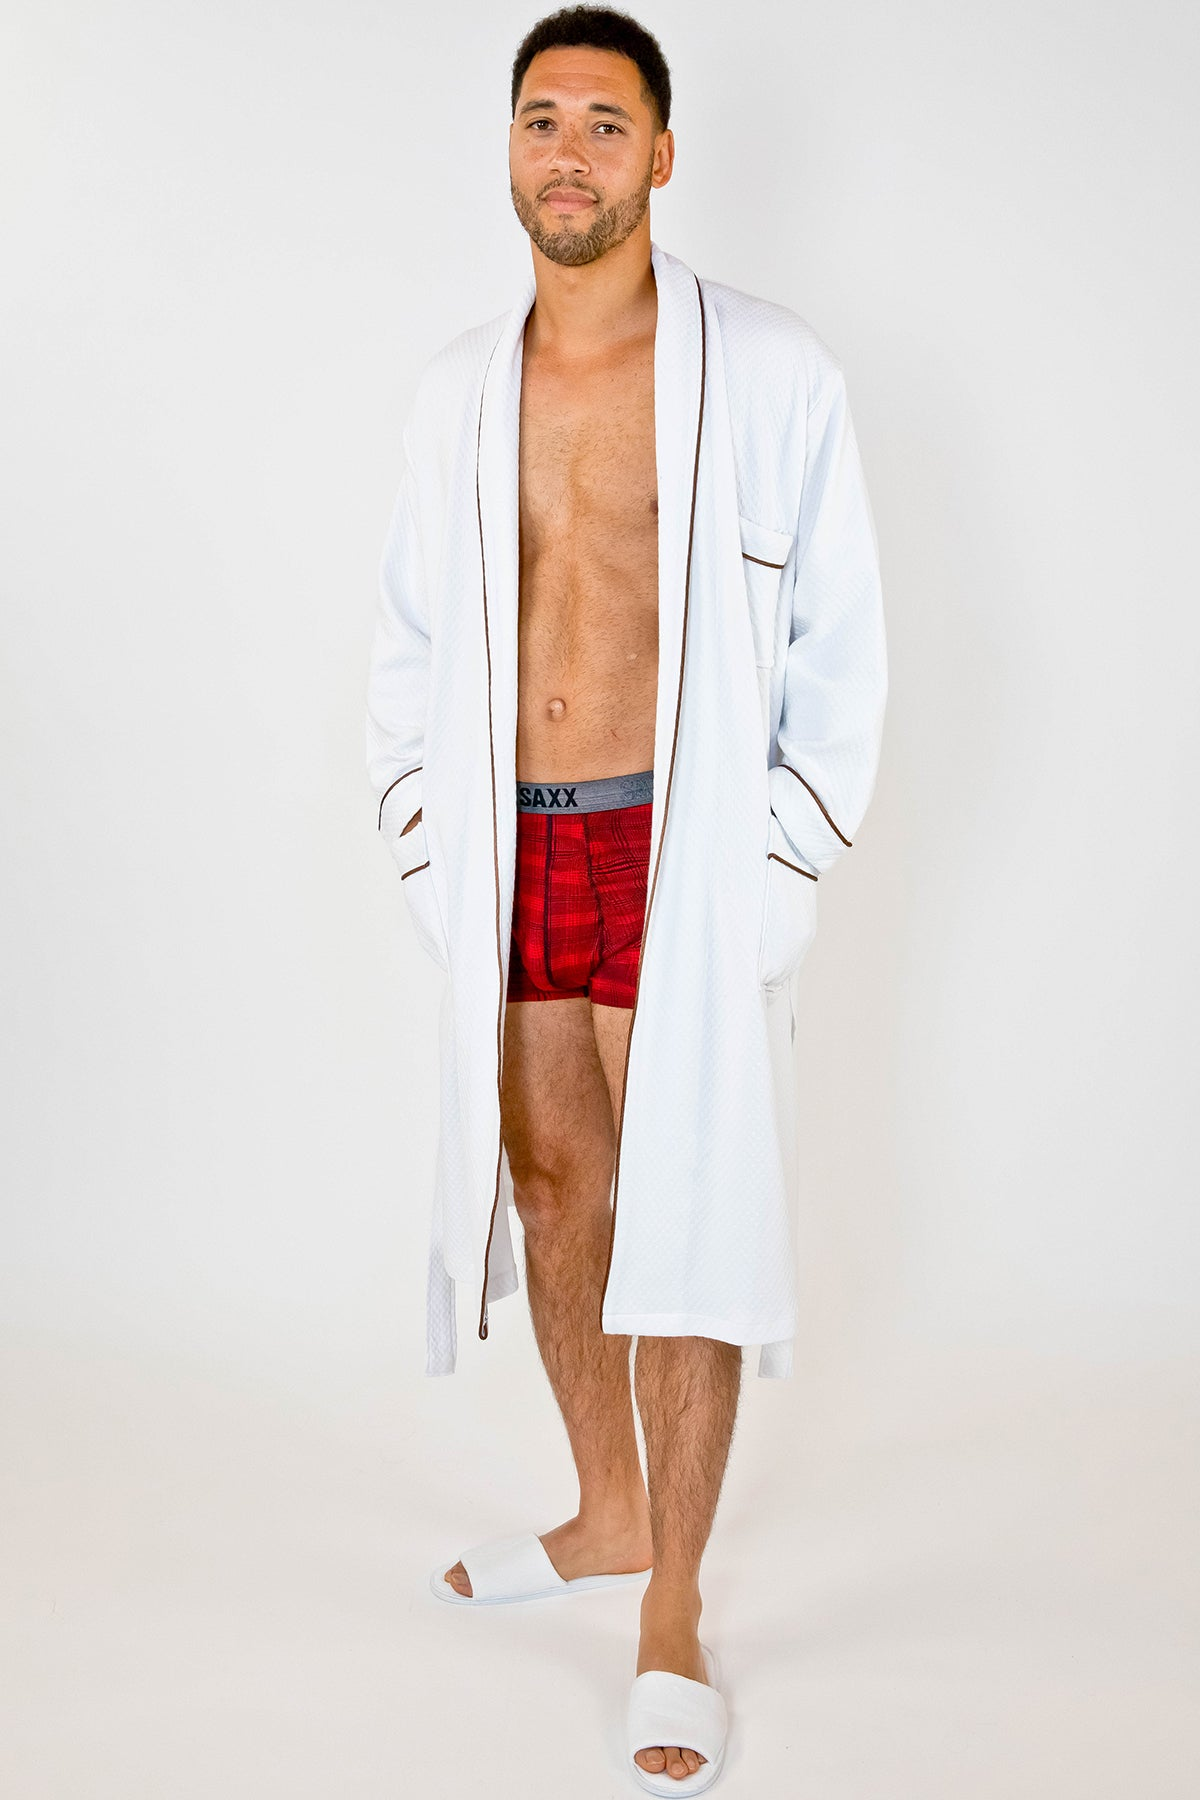 Grid Style Bath Robe White with Brown Piping